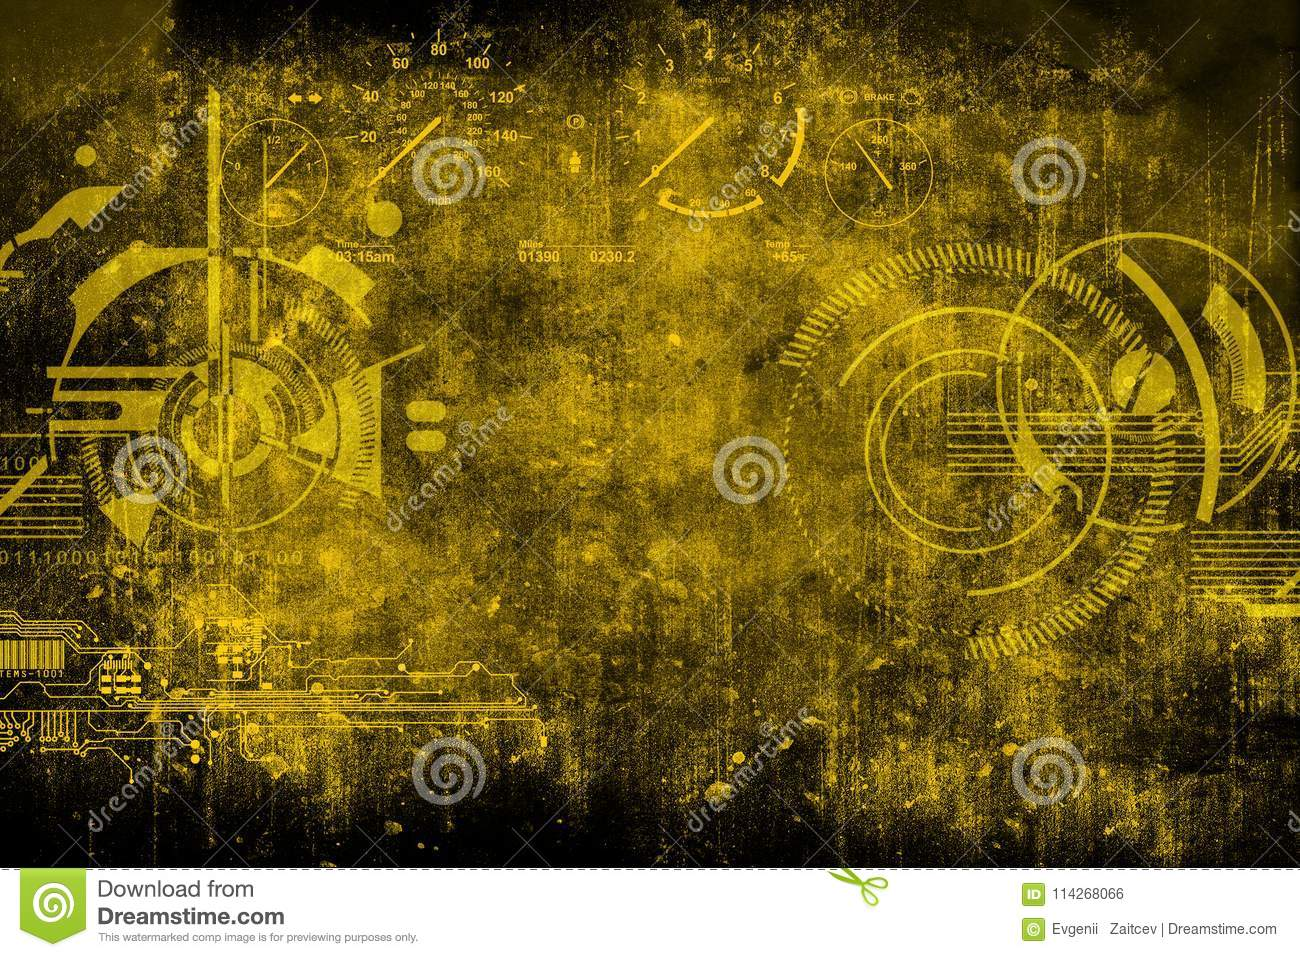 Abstract futuristic cyber grunge industrial vintage background abstract futuristic cyber grunge industrial vintage background blueprint on old grungy surface futuristic technology design concept color malvernweather Gallery